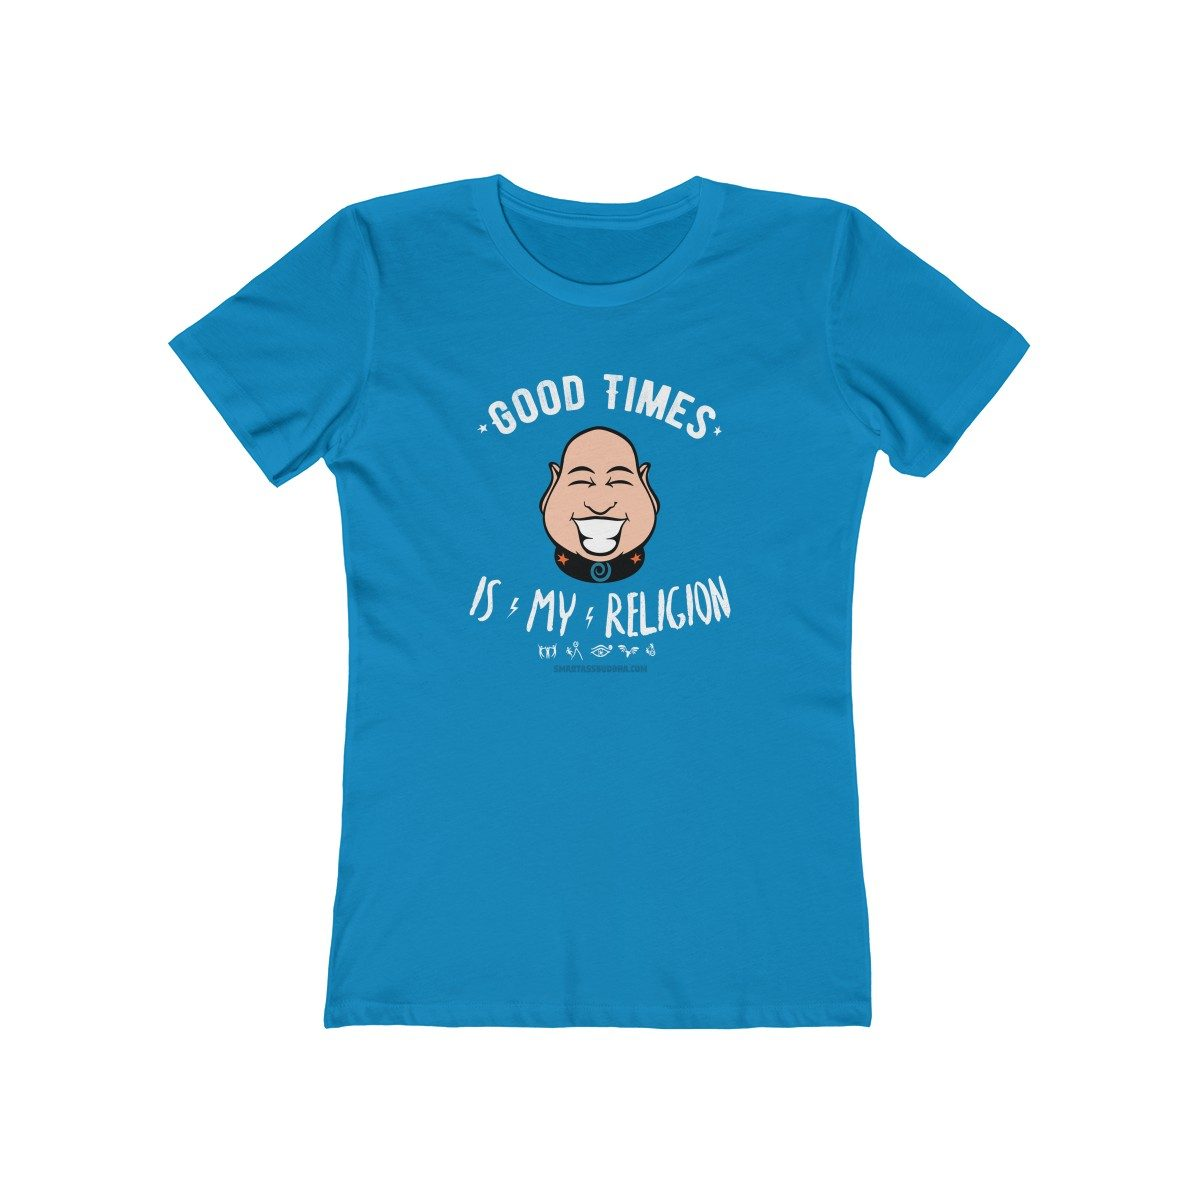 my-religion-is-kindness-tshirt-with-sayings-for-women-funky-gift-cool-blue